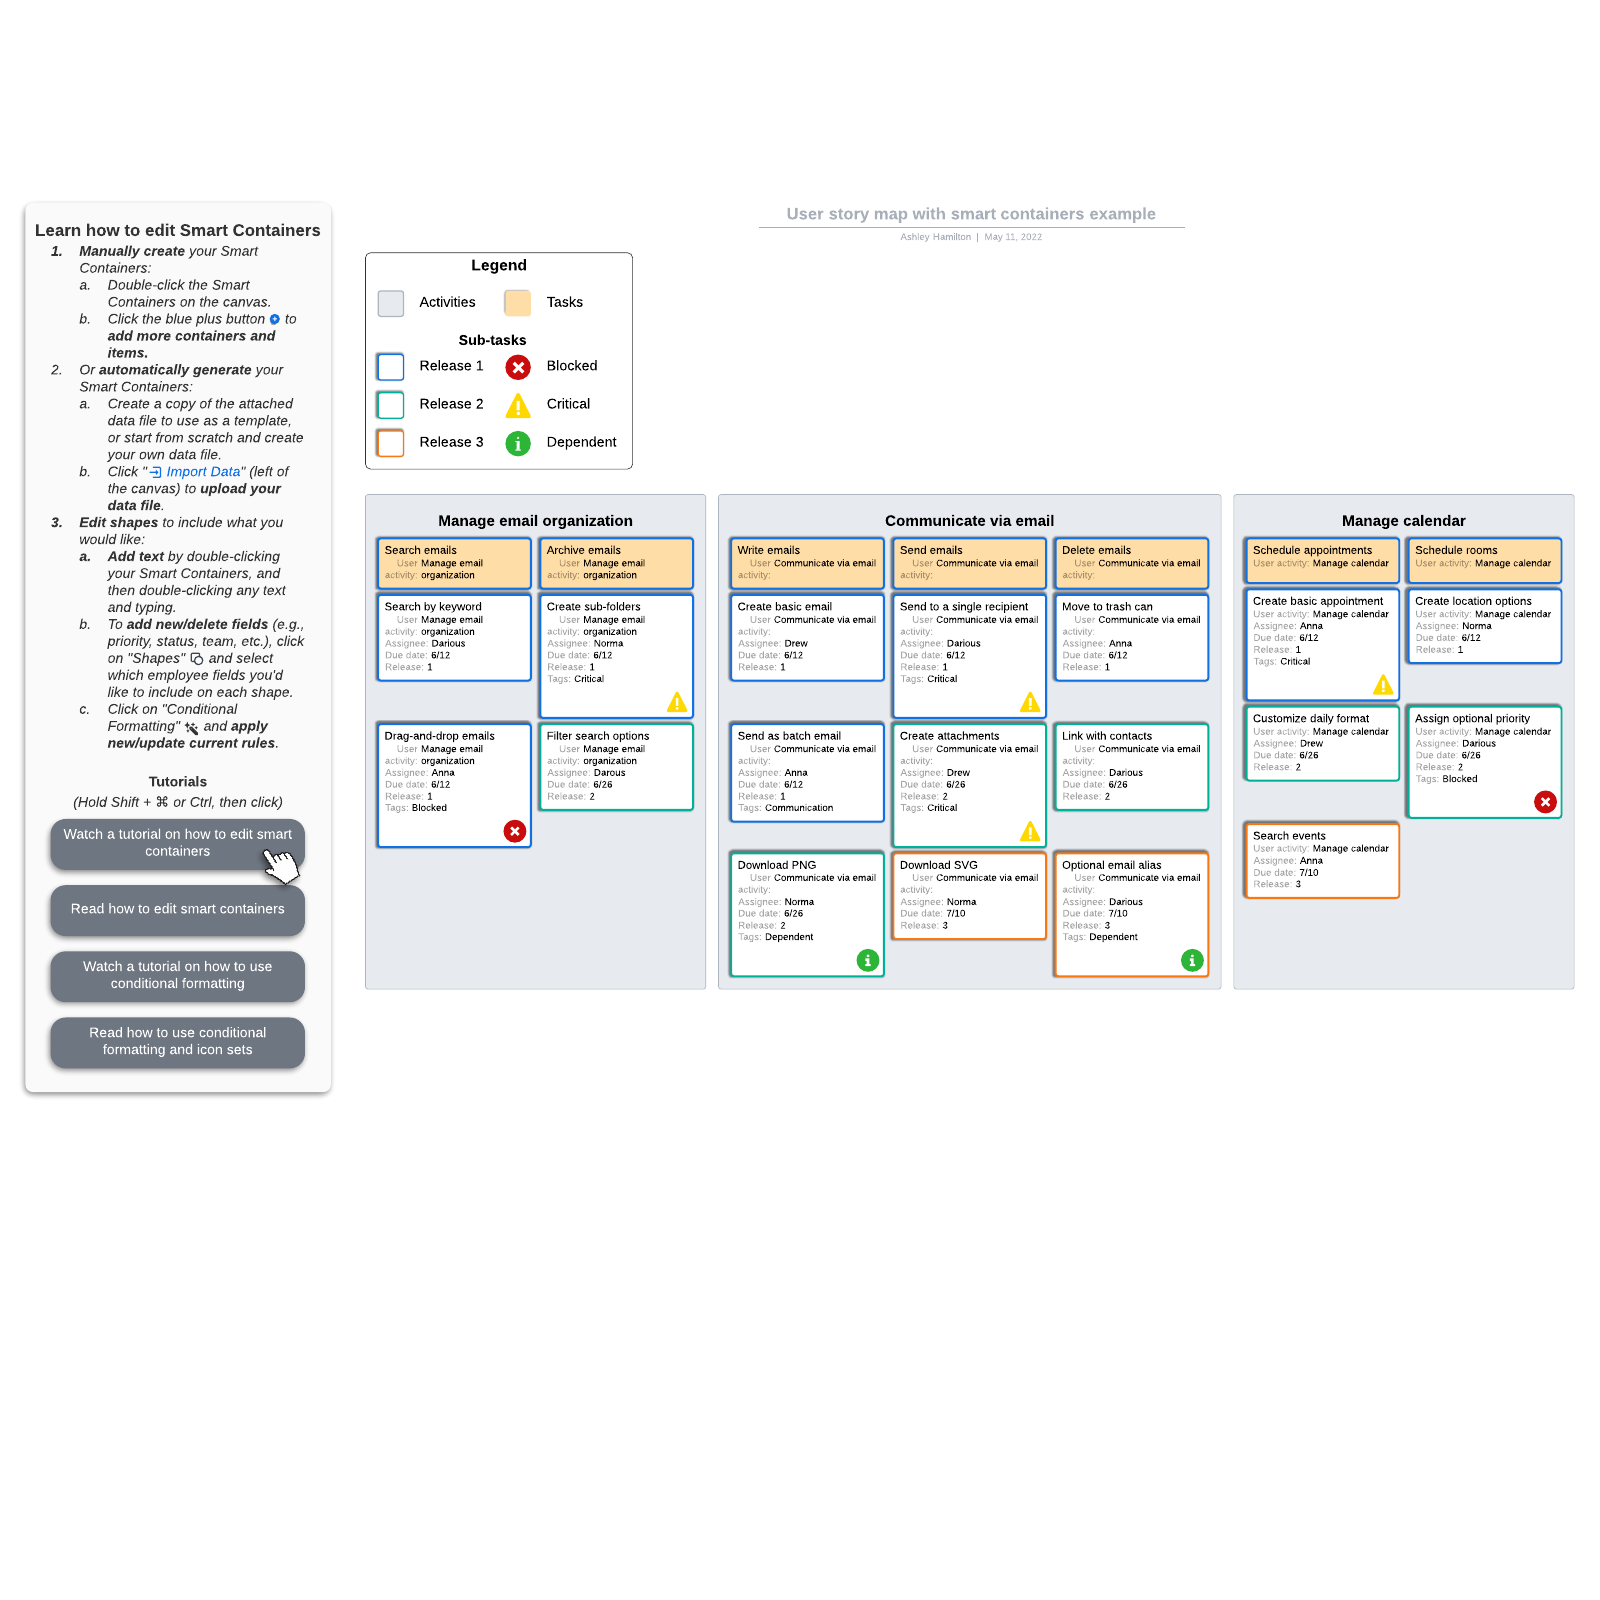 User story map example with Smart Containers